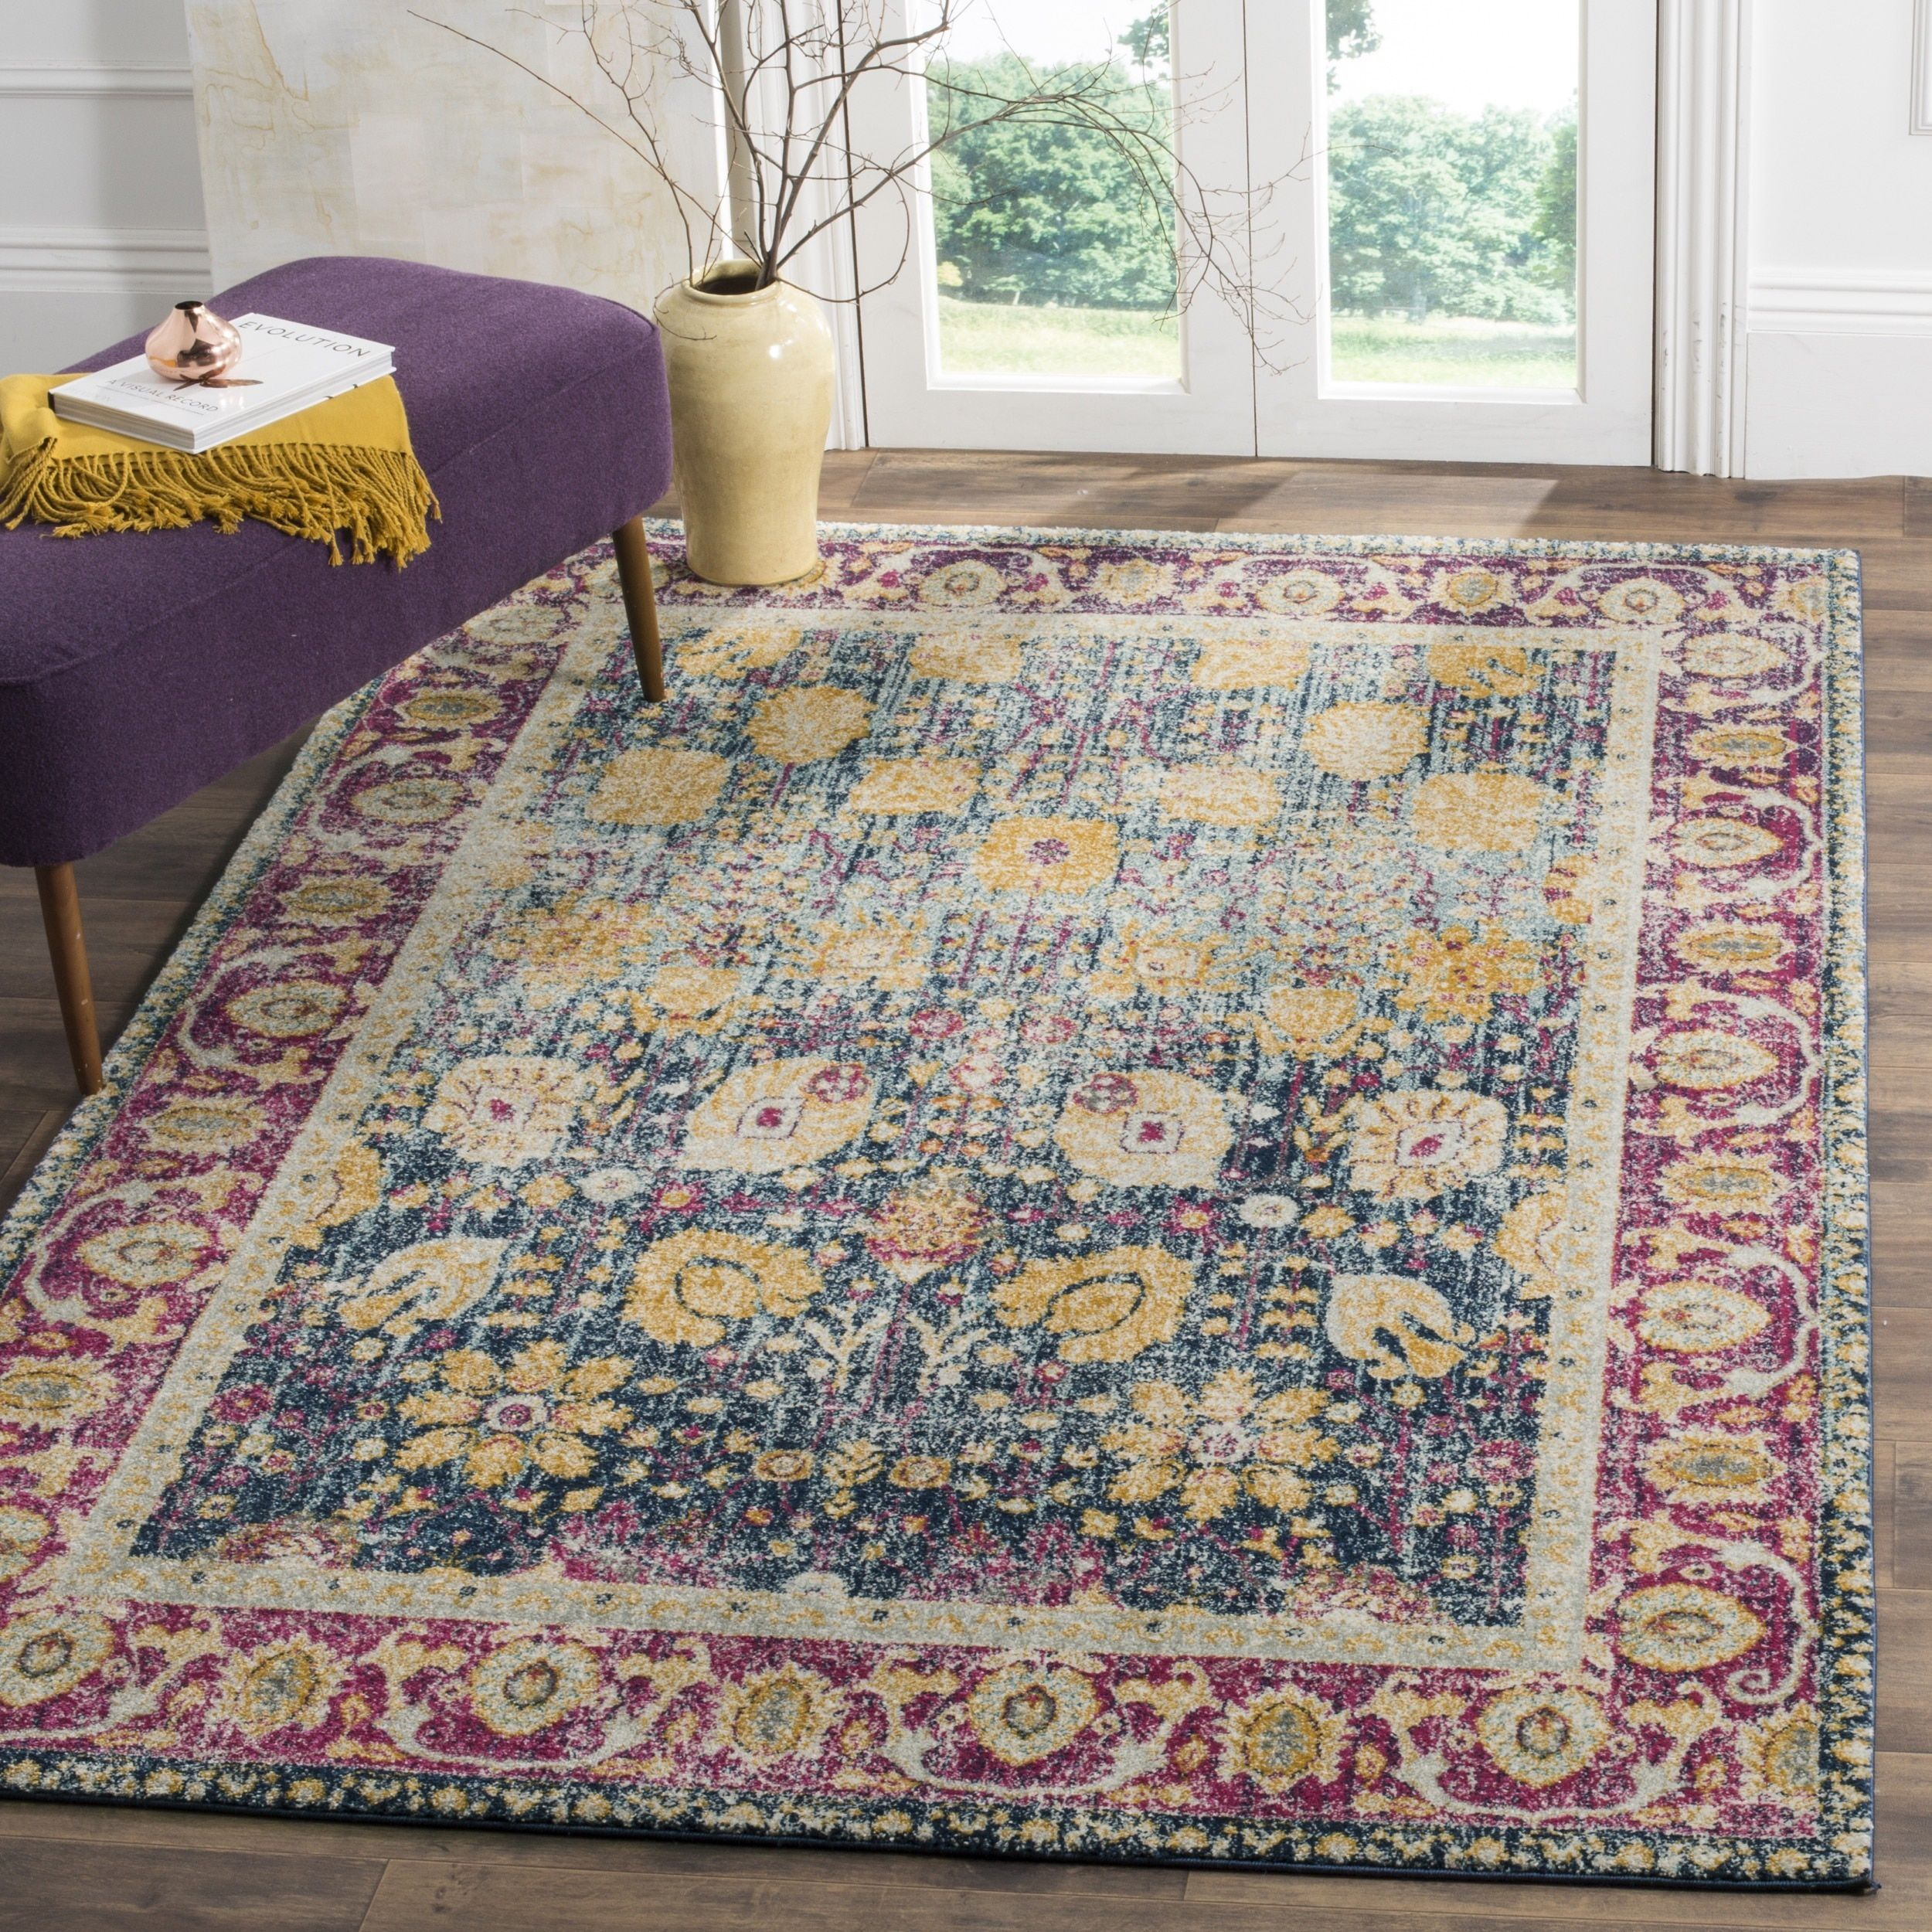 rug persian photo accent vintage fullxfull il knotted floor hand carpet gallery bohemian listing